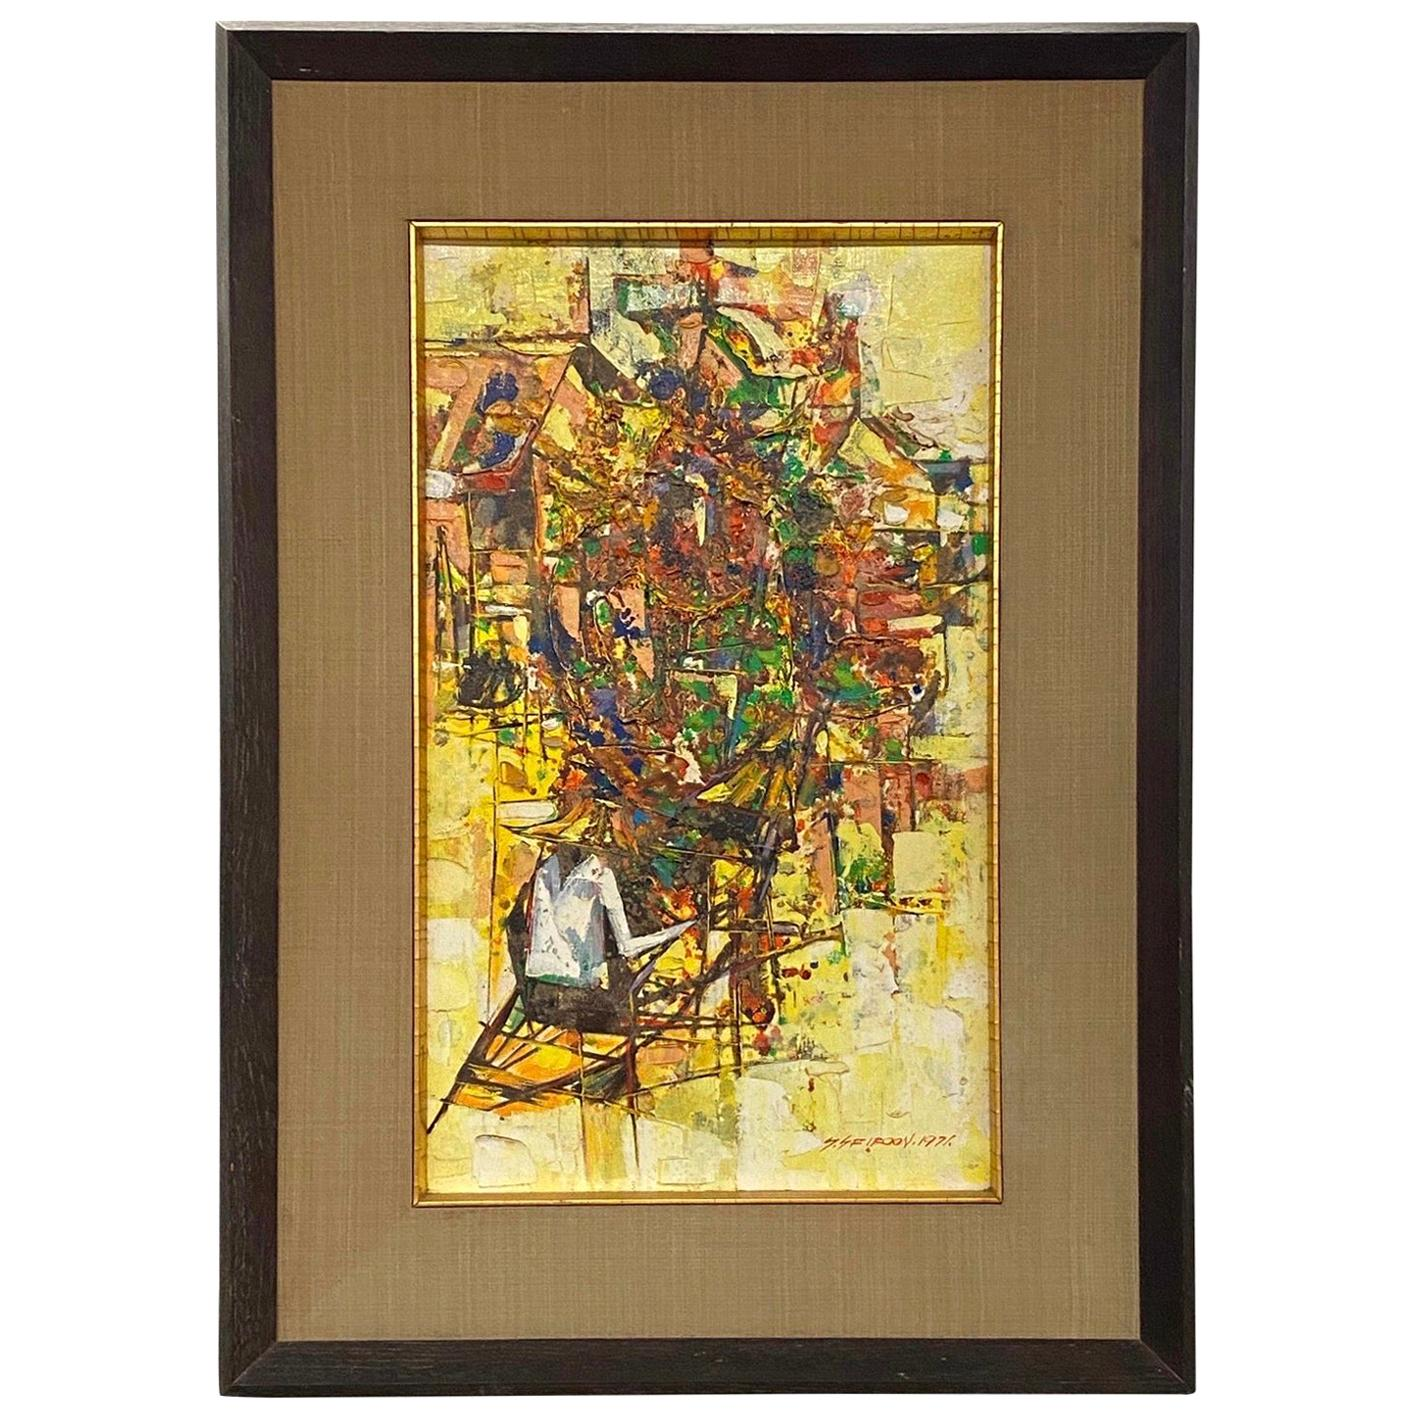 Mid-Century Modern Original Oil Painting Signed by Artist S. Sfiroon, 1971